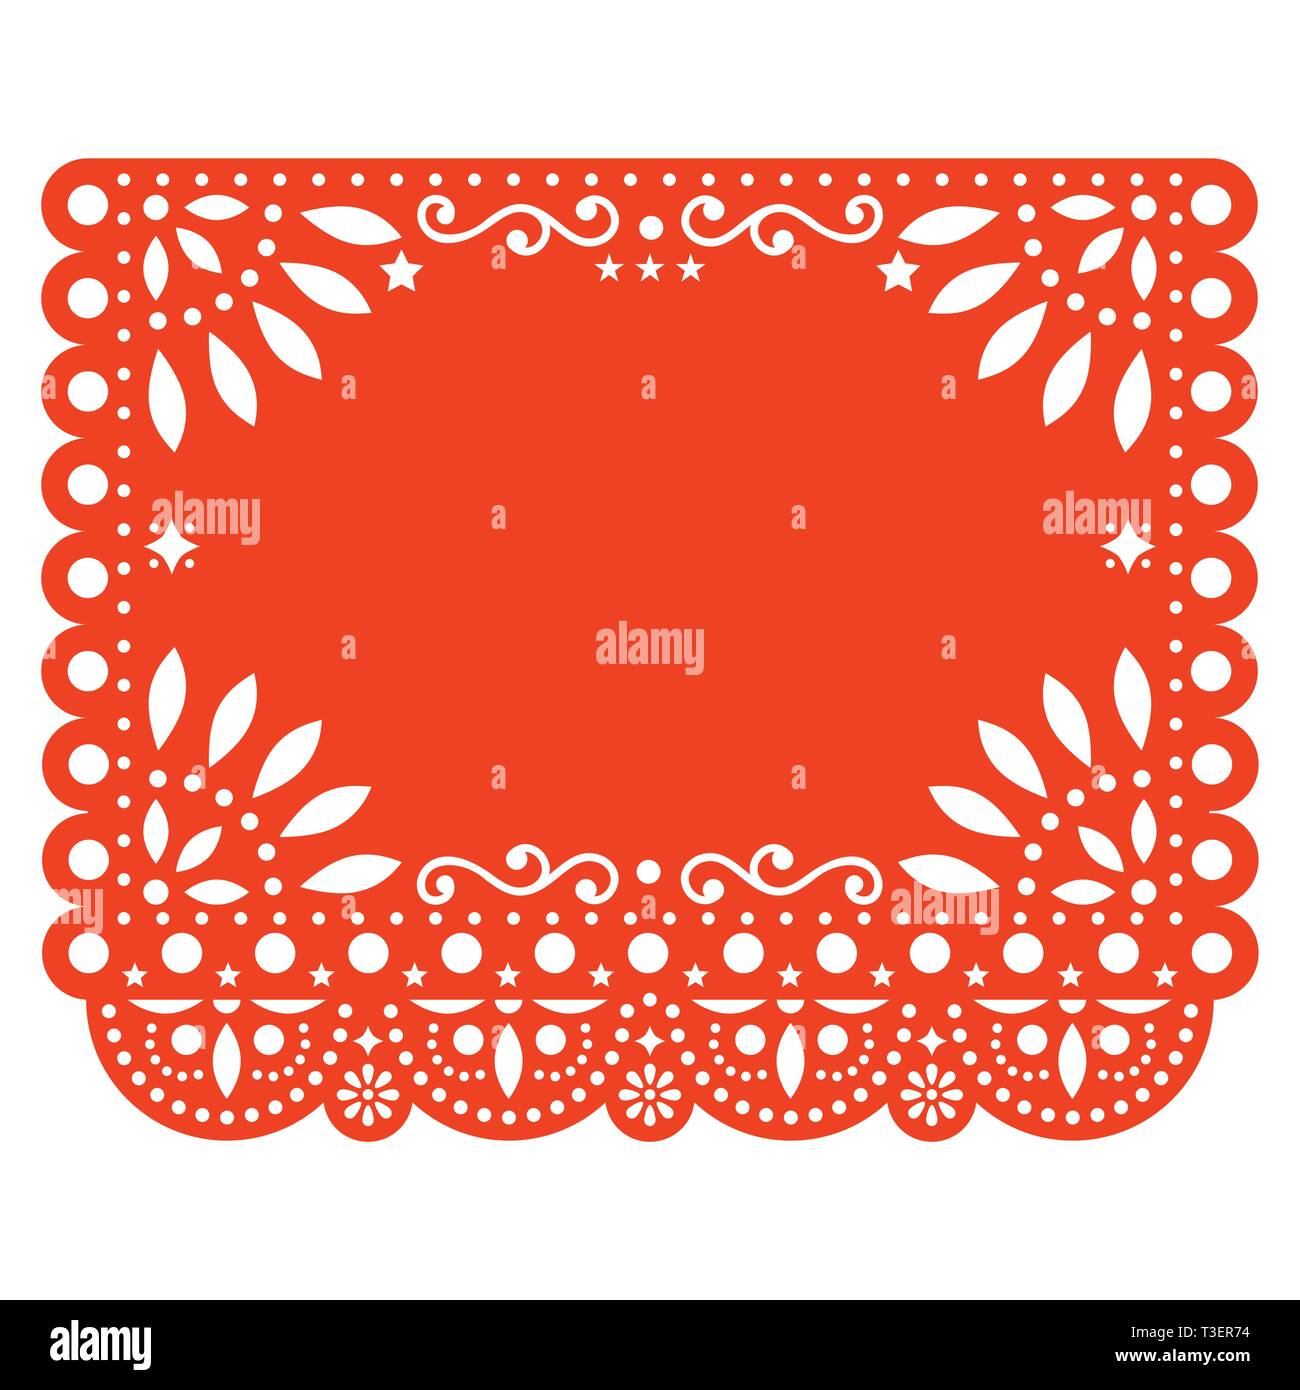 Papel Picado Vector Floral Template Design With Abstract